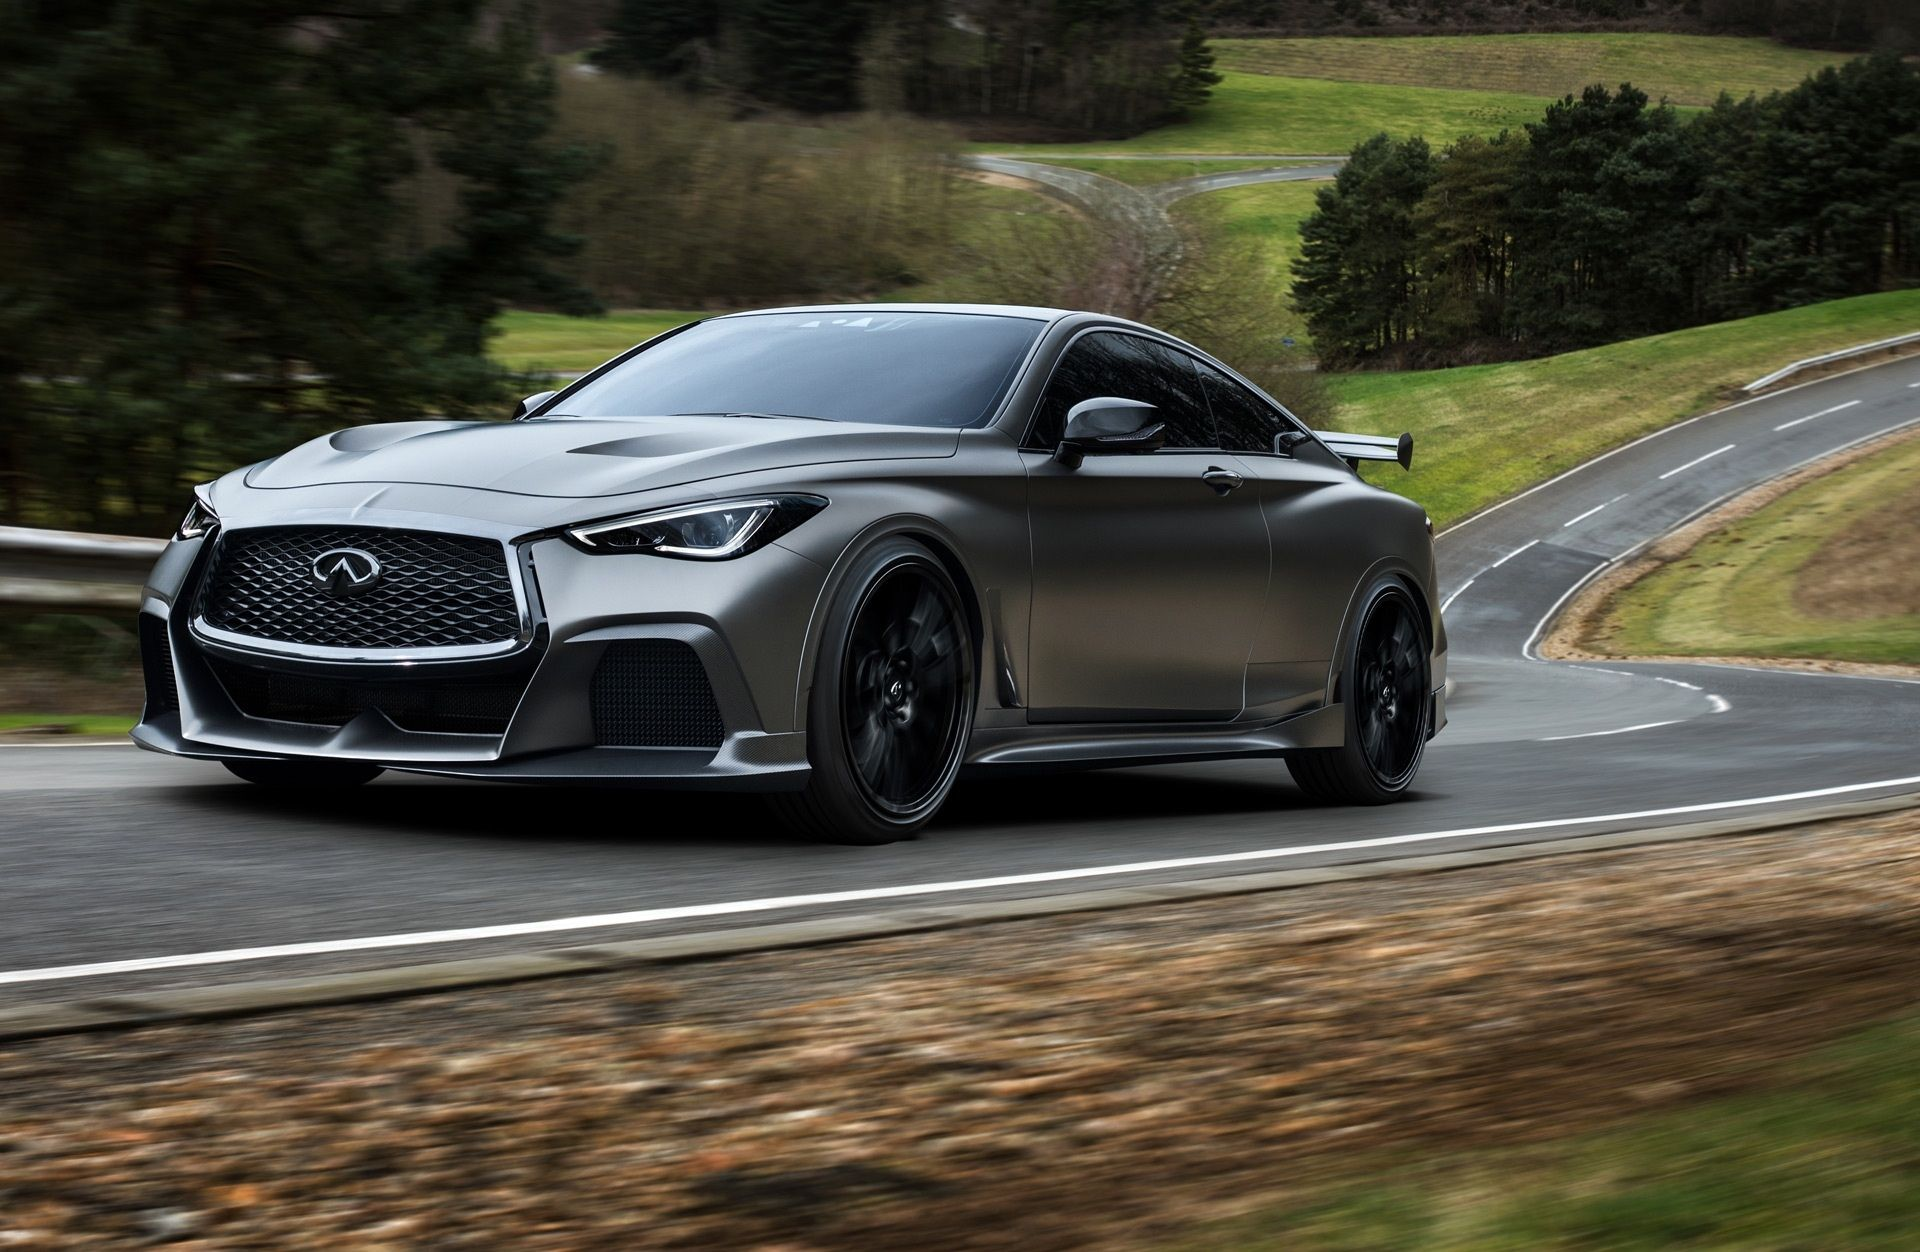 2021 infiniti q60 coupe  car wallpaper